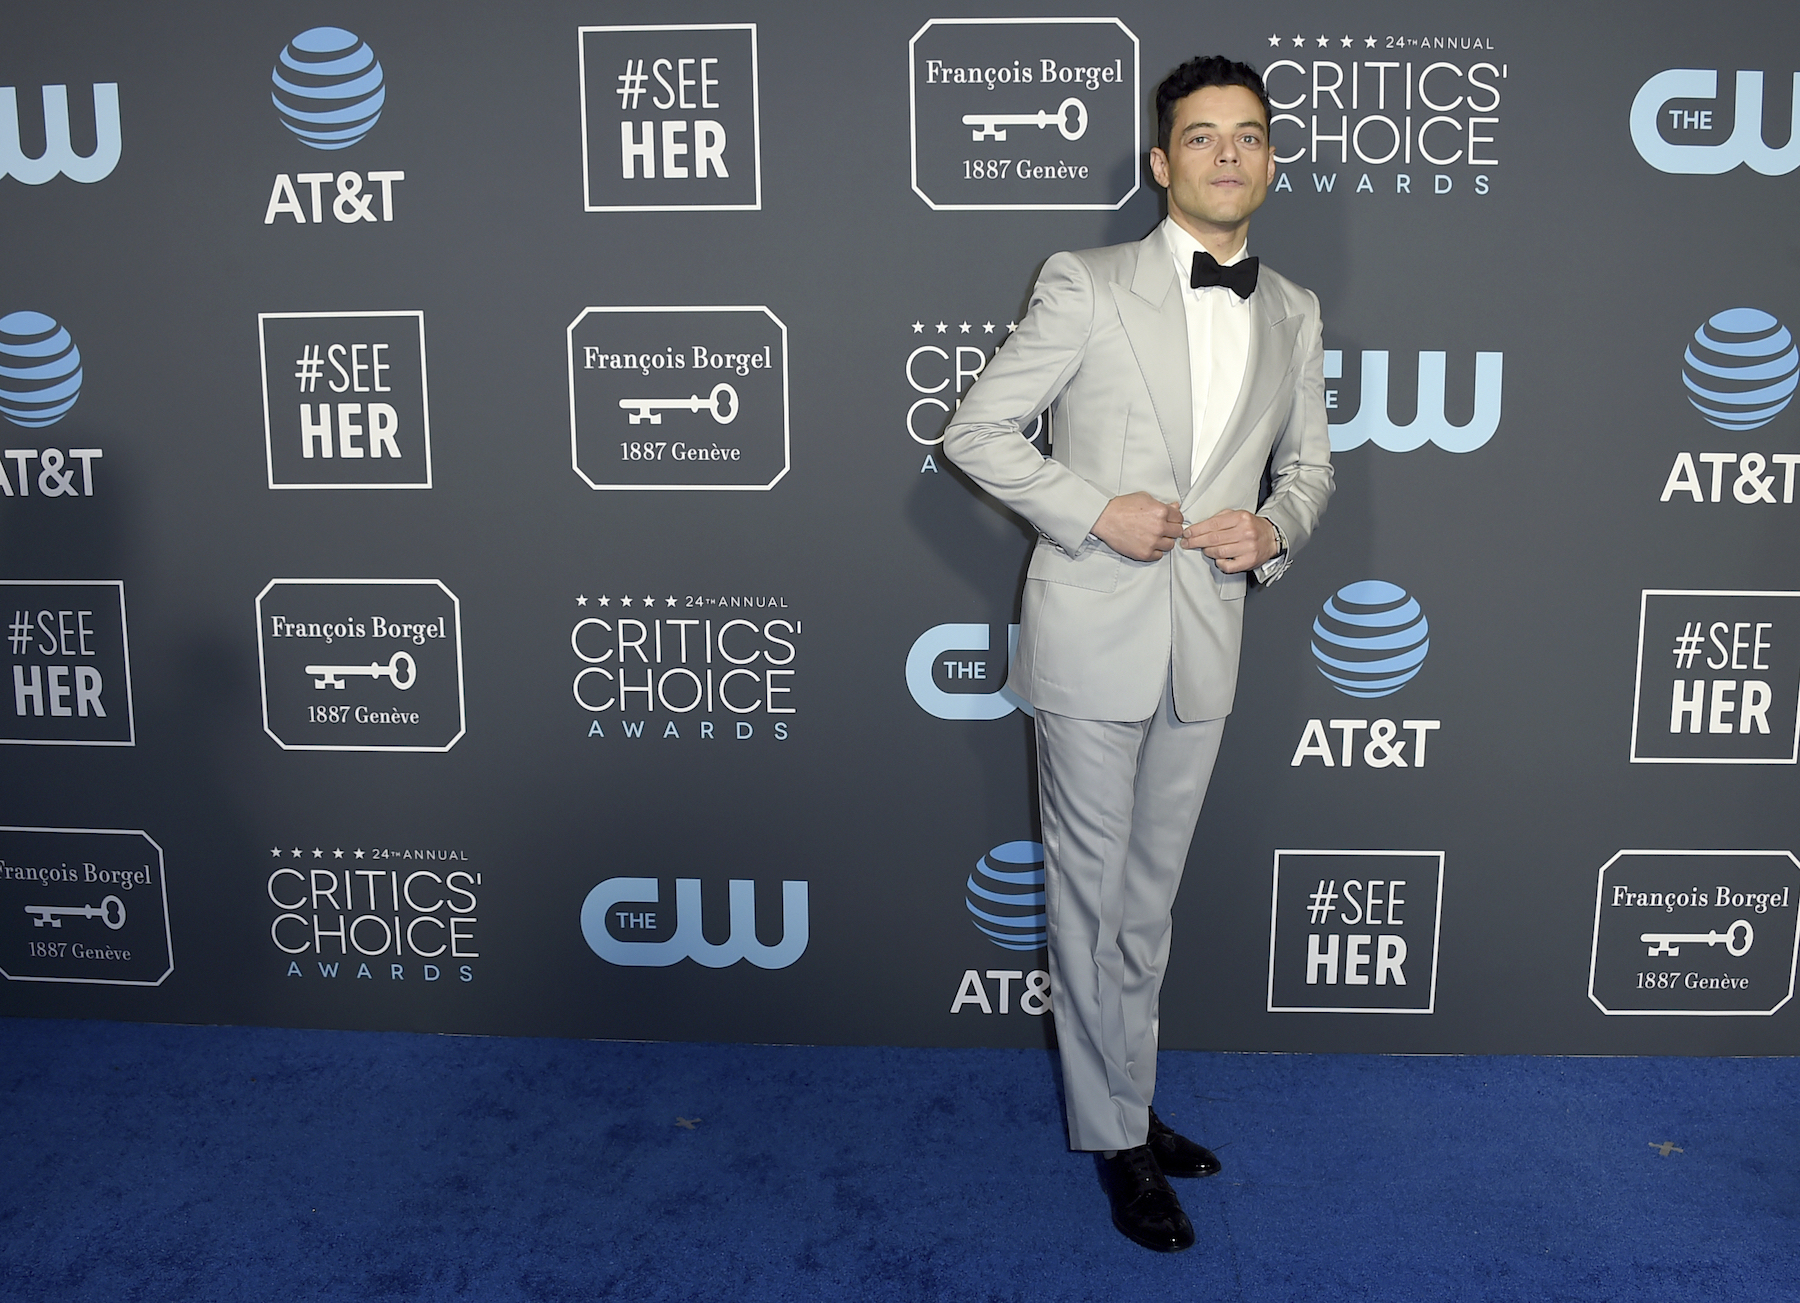 "<div class=""meta image-caption""><div class=""origin-logo origin-image ap""><span>AP</span></div><span class=""caption-text"">Rami Malek arrives at the 24th annual Critics' Choice Awards on Sunday, Jan. 13, 2019, at the Barker Hangar in Santa Monica, Calif. (Jordan Strauss/Invision/AP)</span></div>"